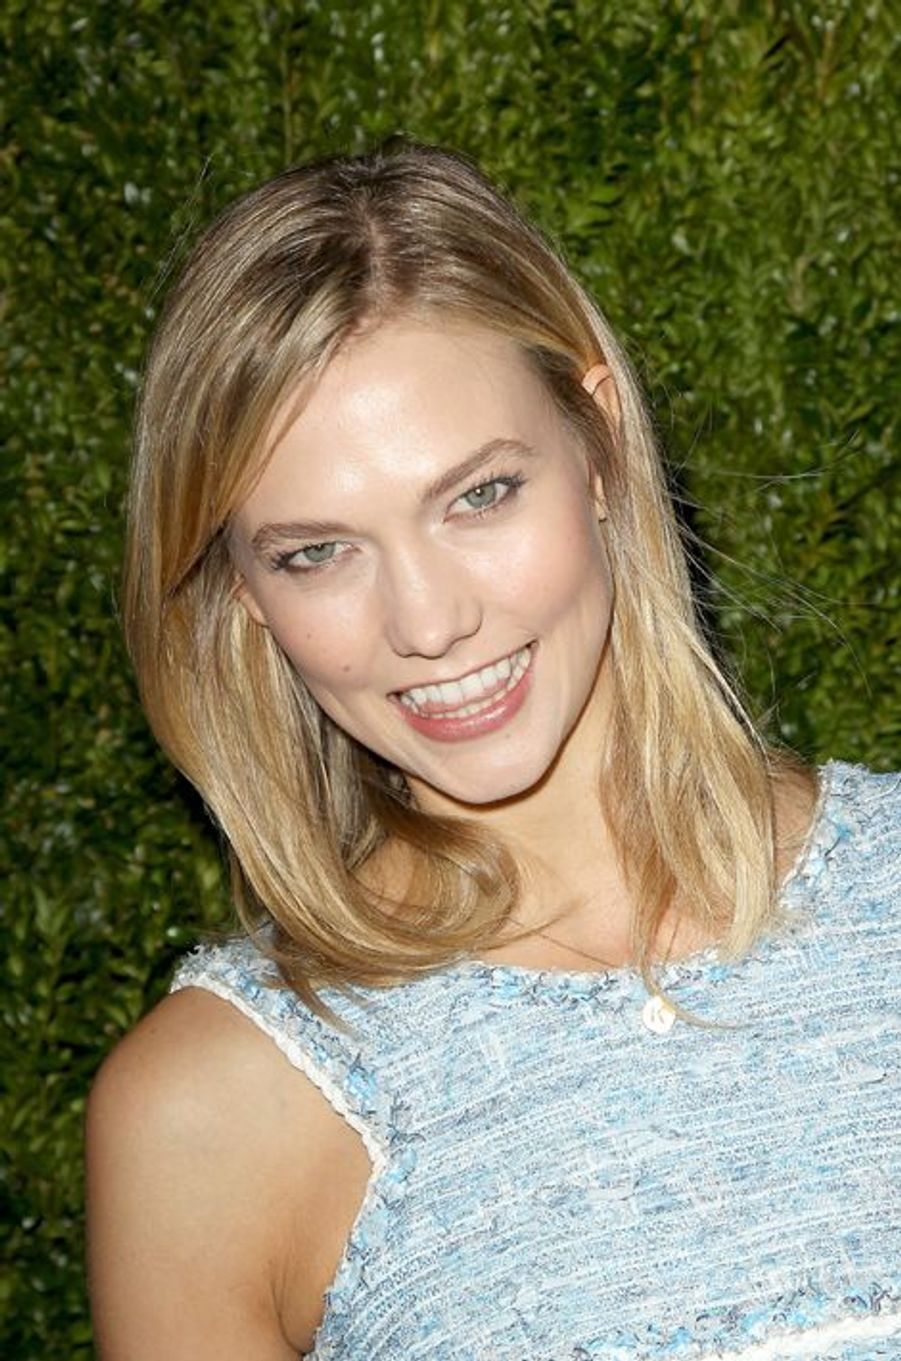 Karlie Kloss à New York le 20 avril 2015